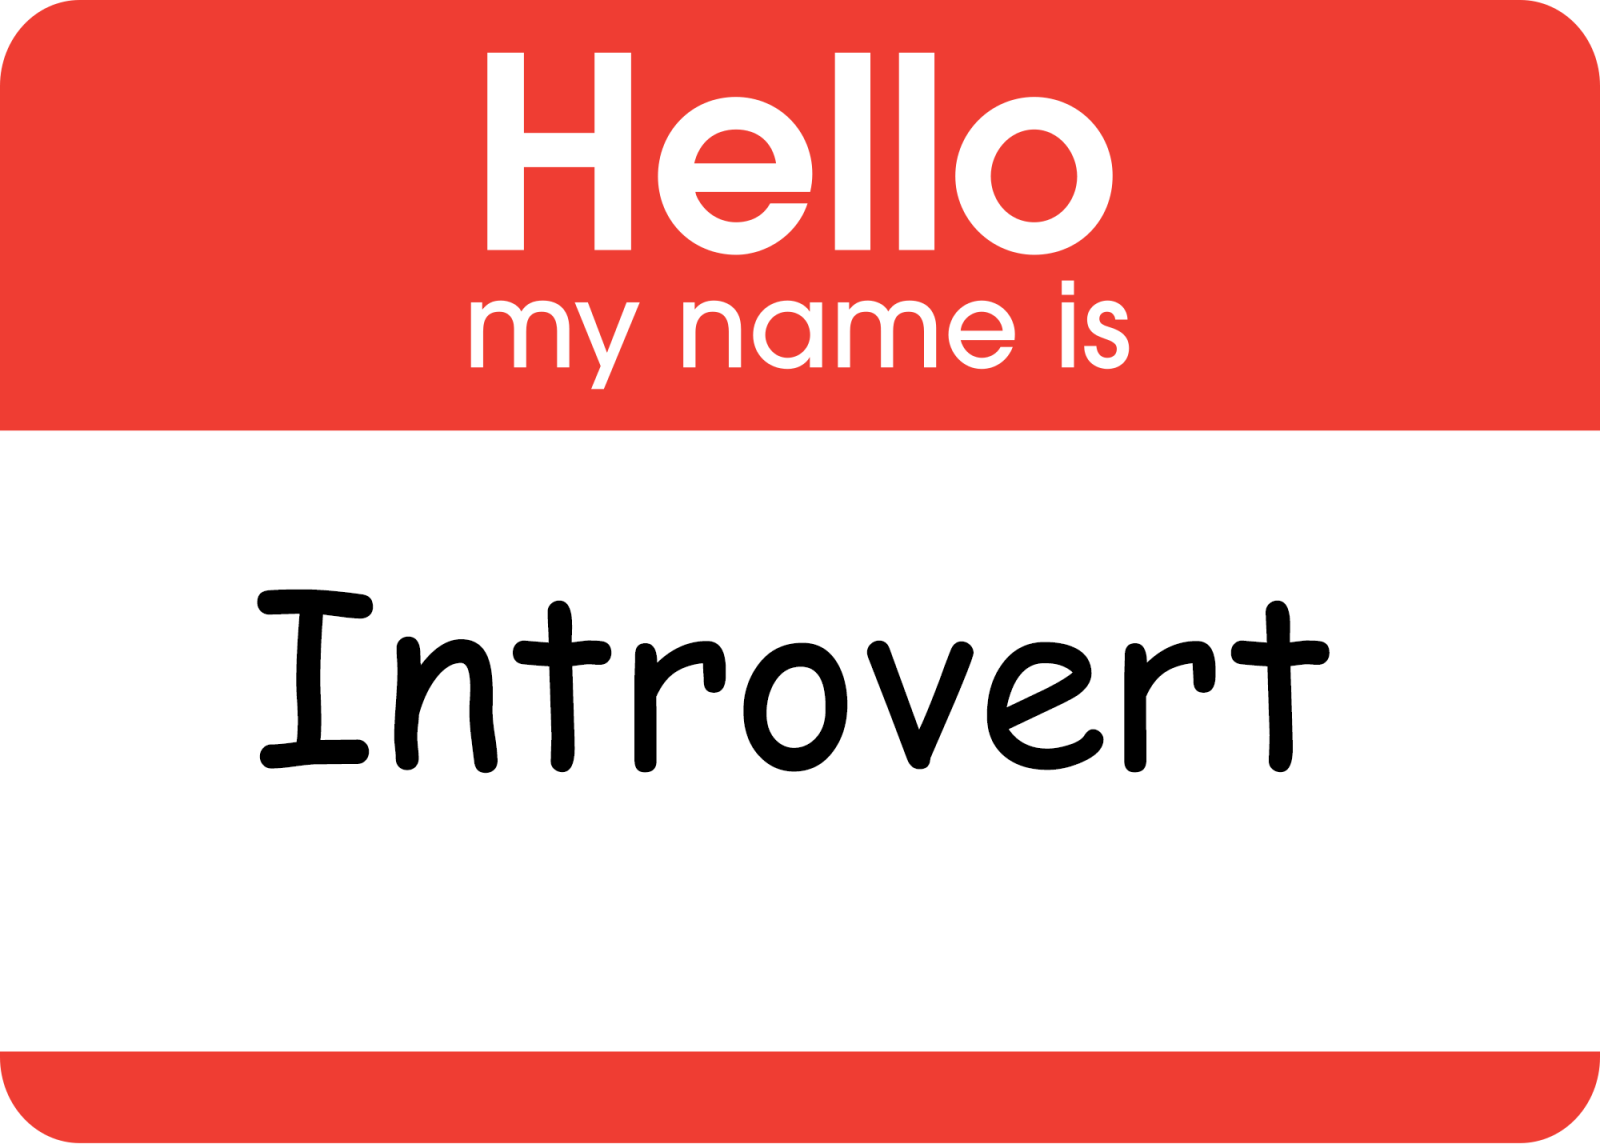 introverts best leaders for proactive employees How extroverts are taking the top jobs when managing proactive employees, introverts were the more effective i think the best leaders end up operating like.